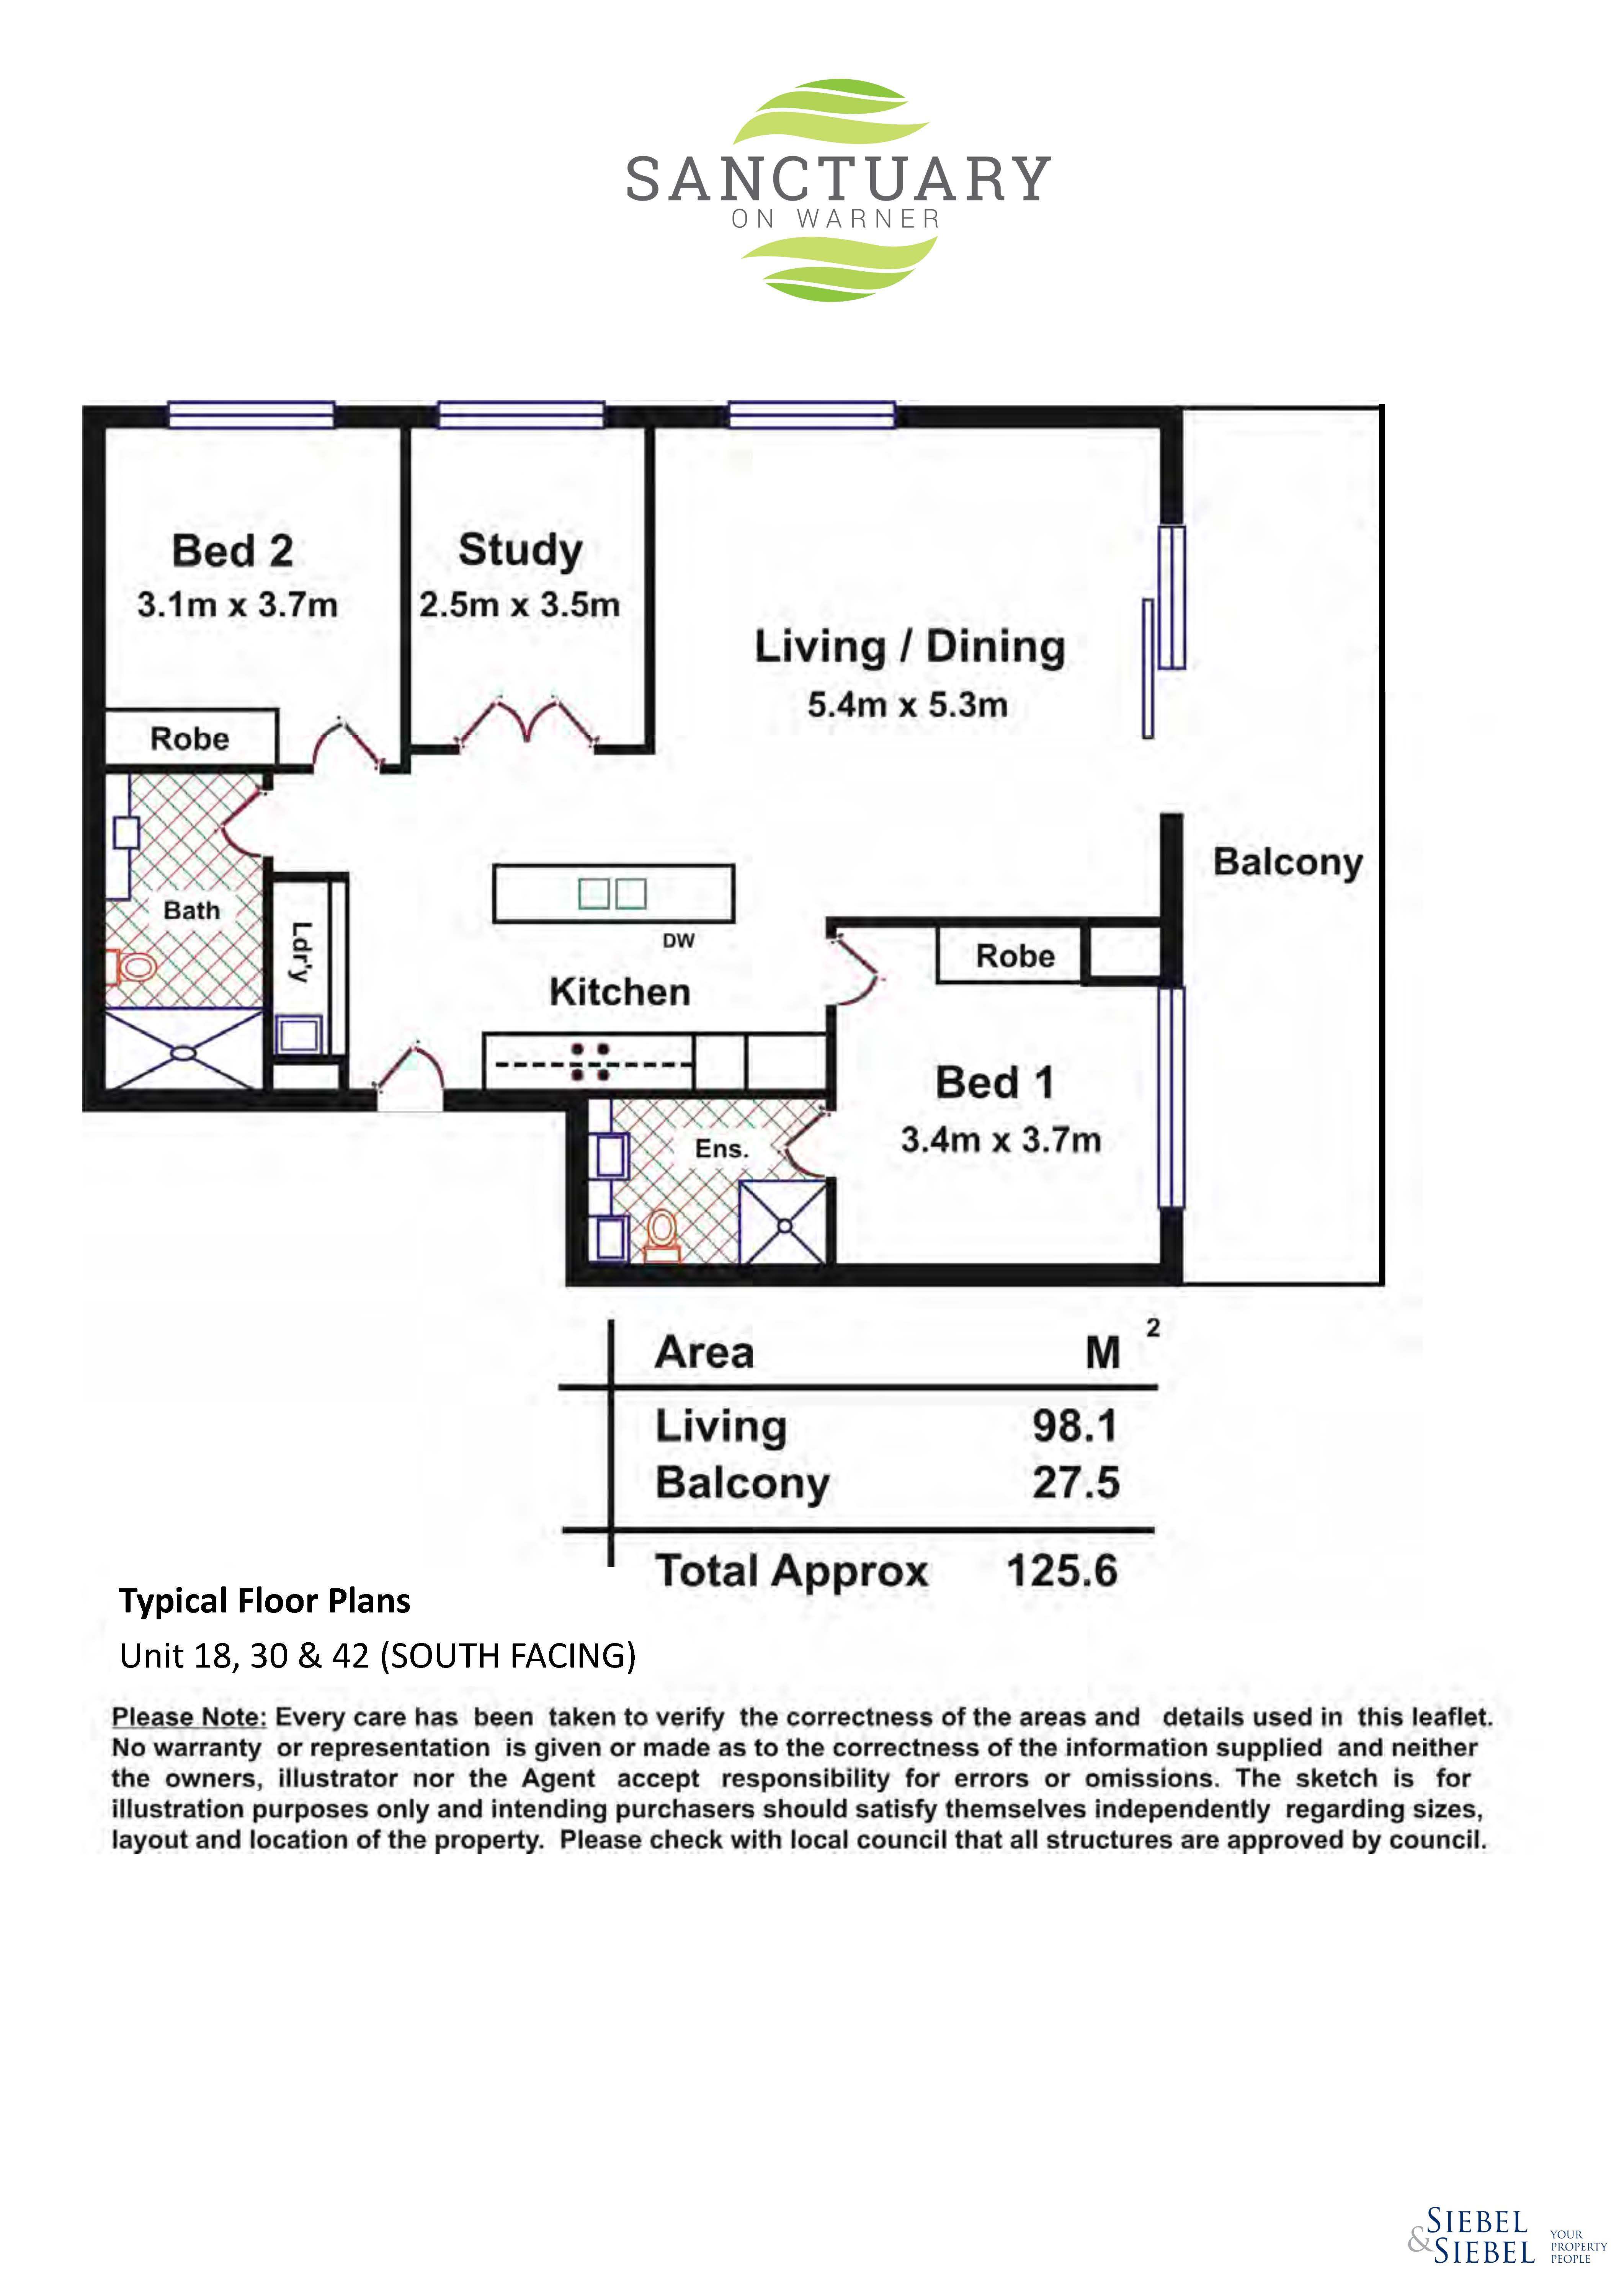 11721387__1599199254-mydimport-1596538640-hires.22614-SanctuaryApartmentFloorPlans2017Page14.jpg